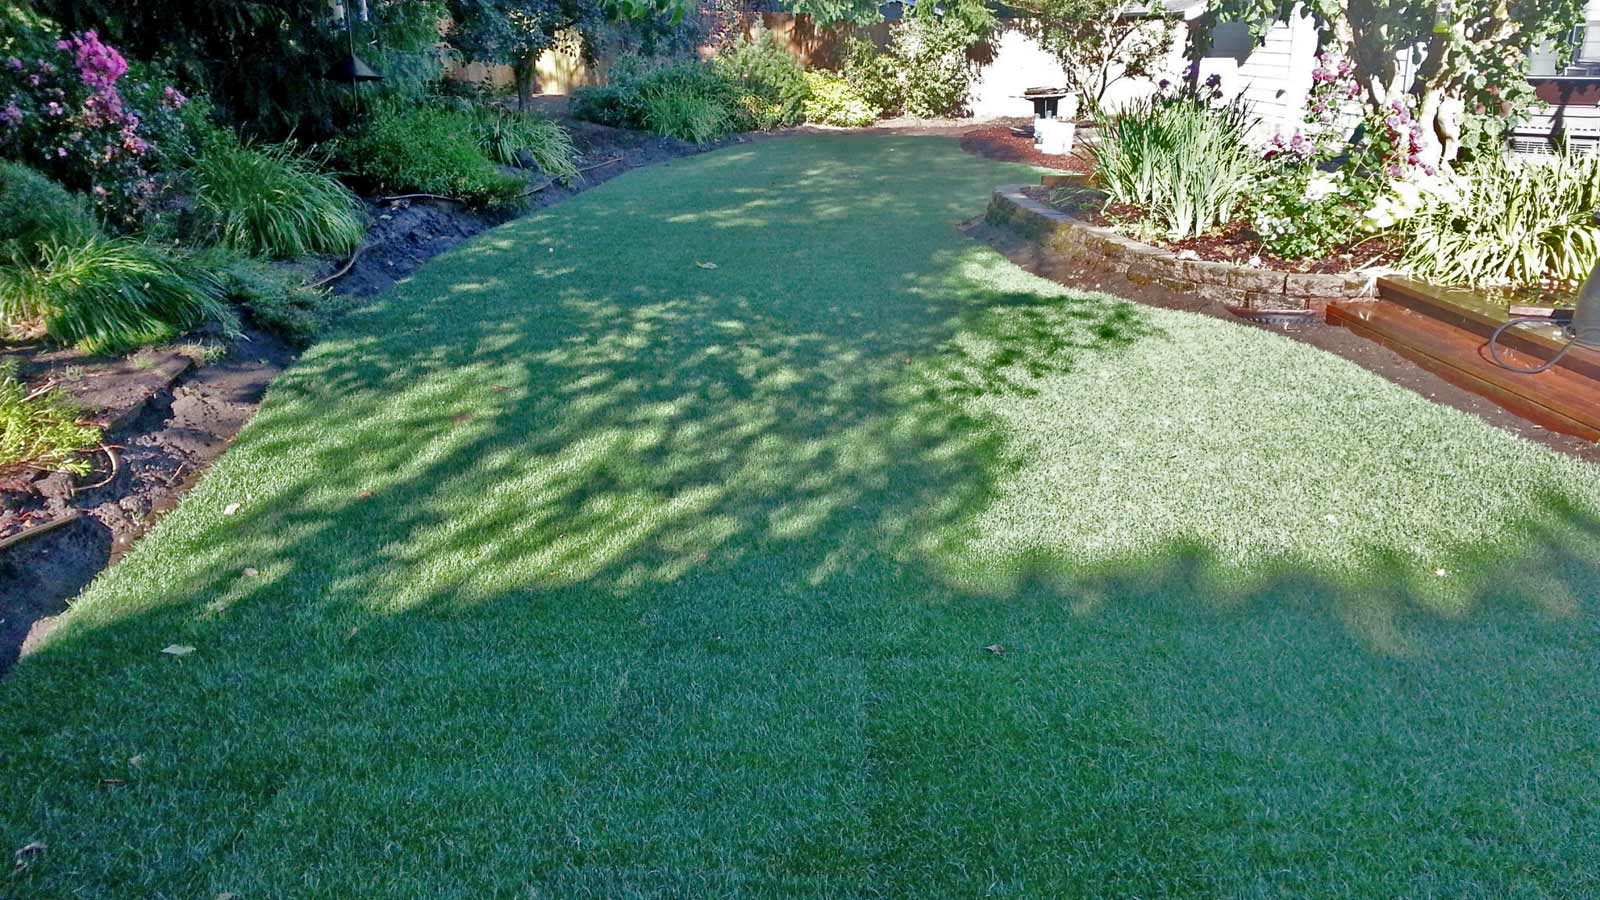 Tumwater backyard transformed by a new sod lawn professionally installed by AJB Landscaping & Fence